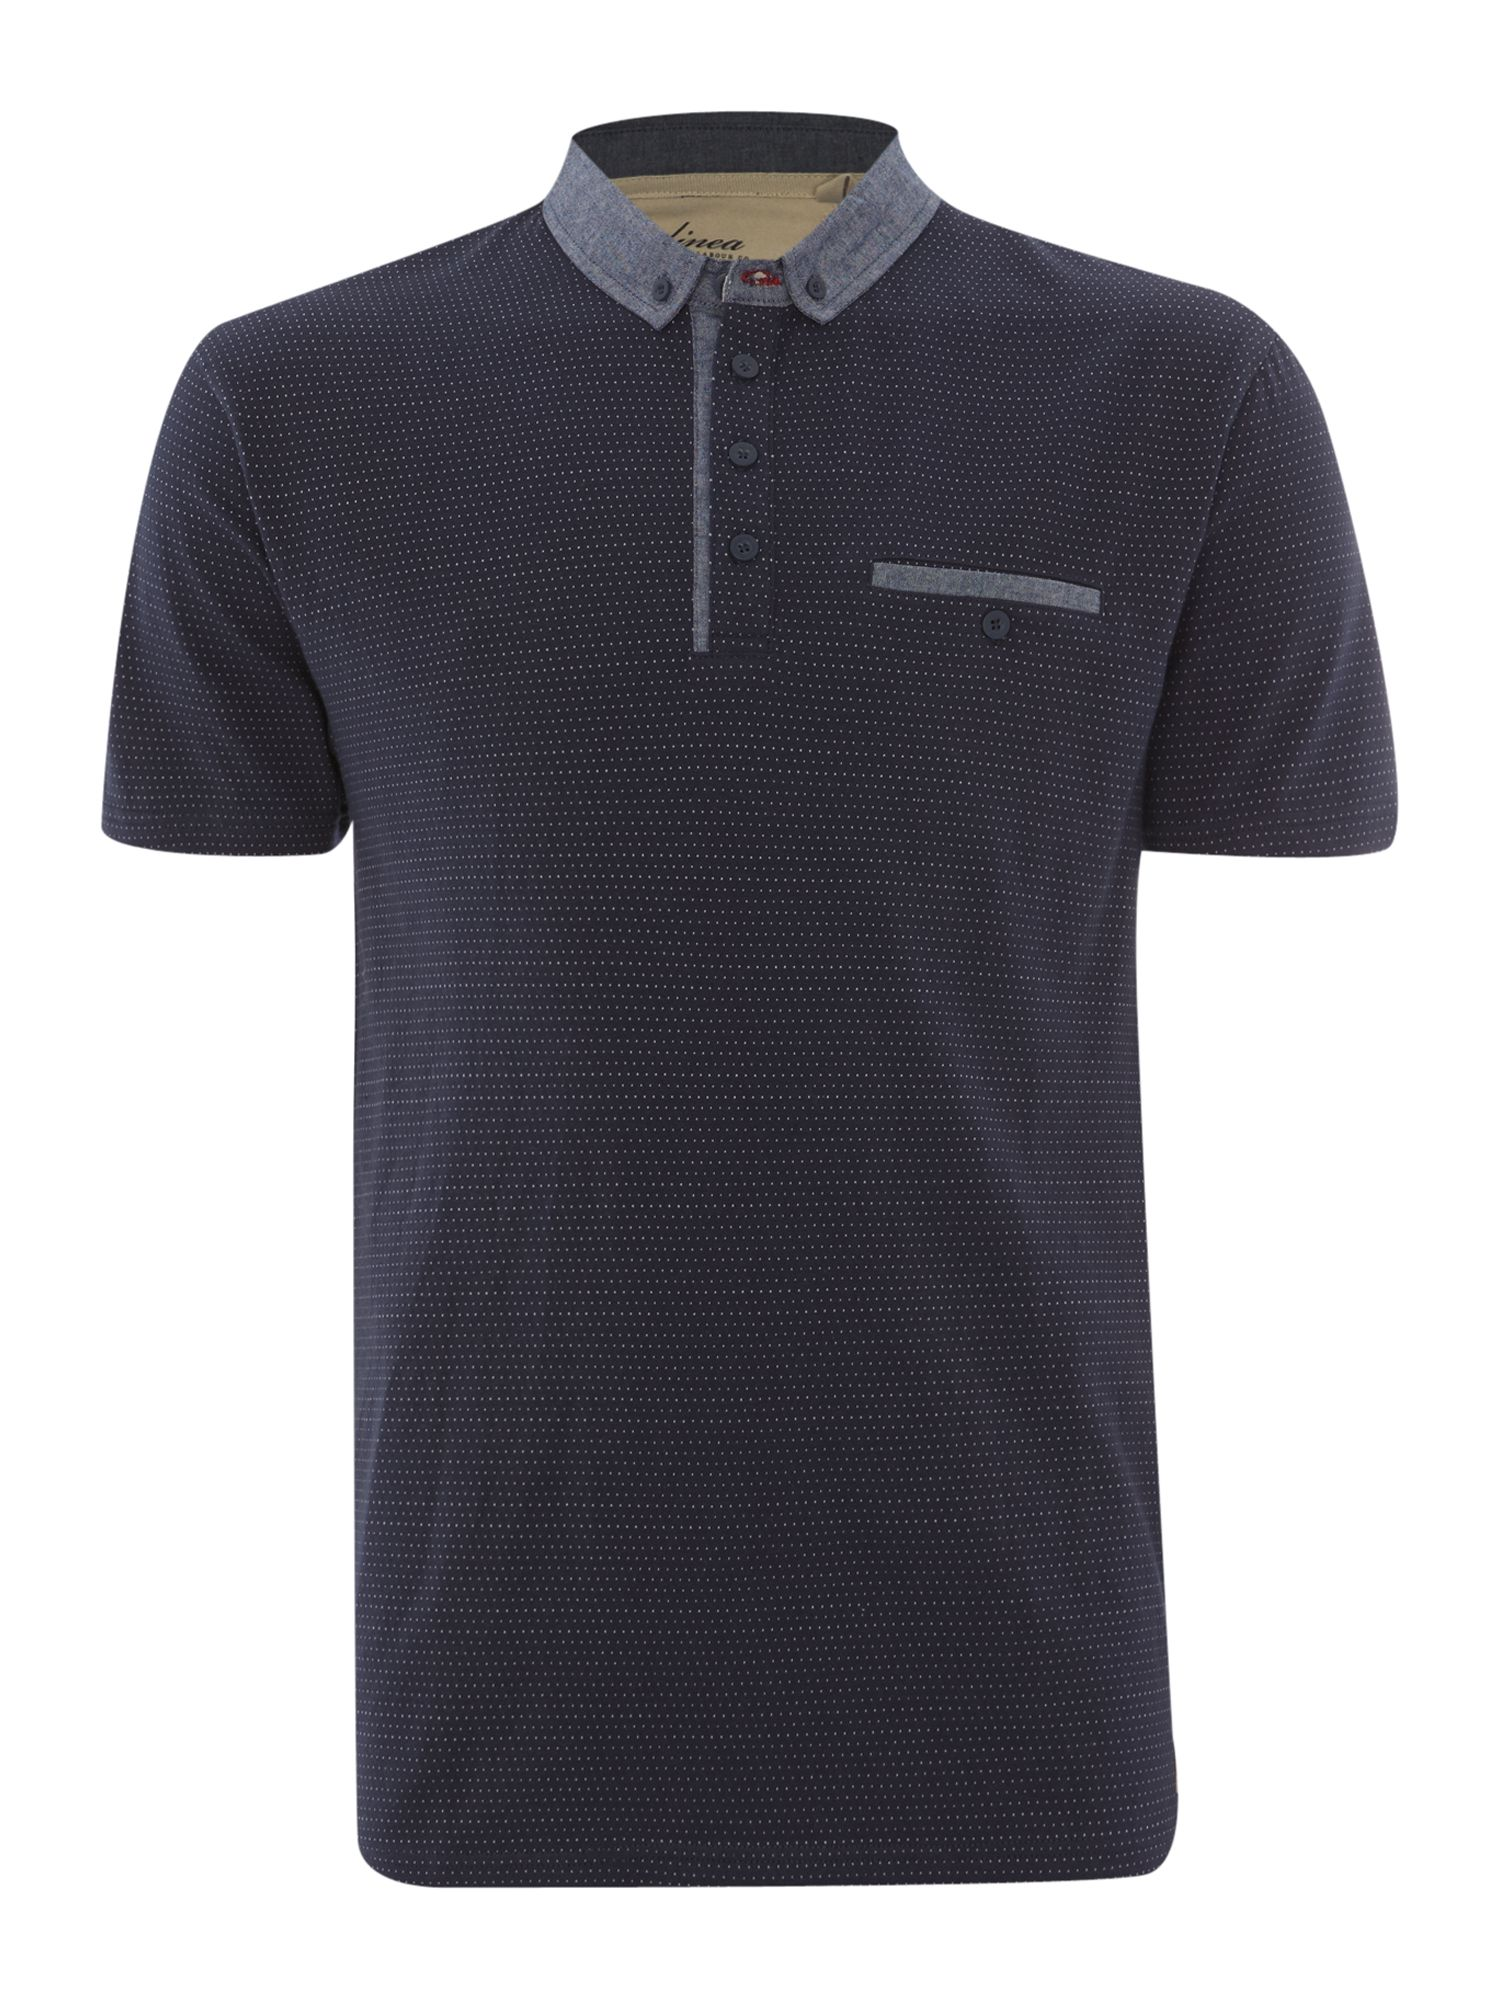 verrier polka dot polo